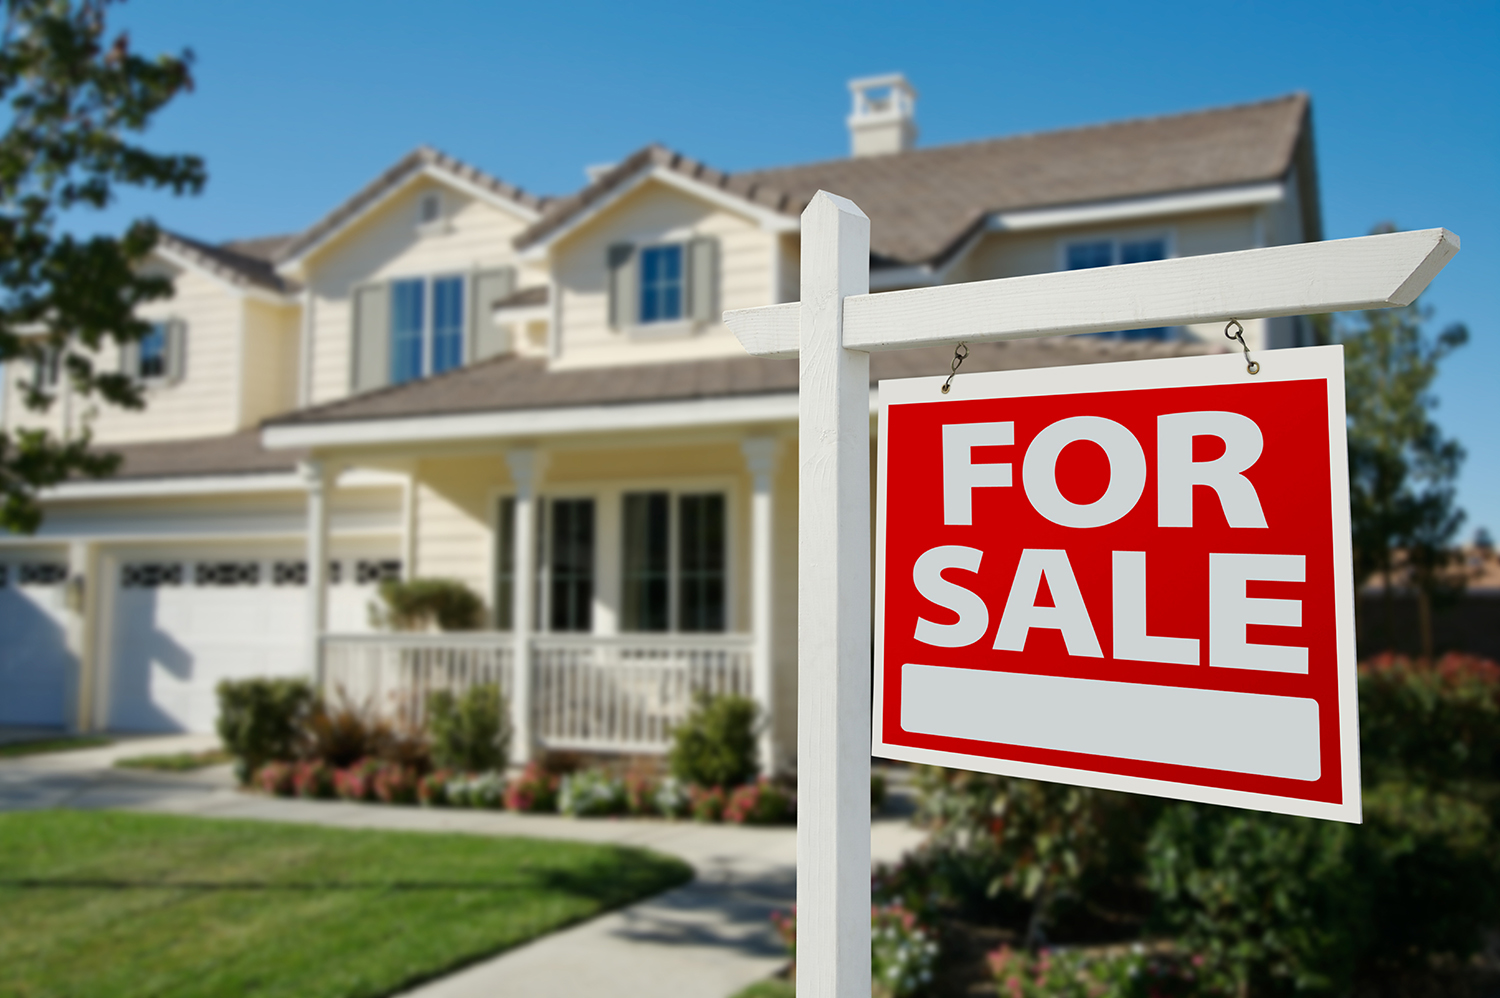 Selling your home or renting out an income suite? Get top dollar with these tips